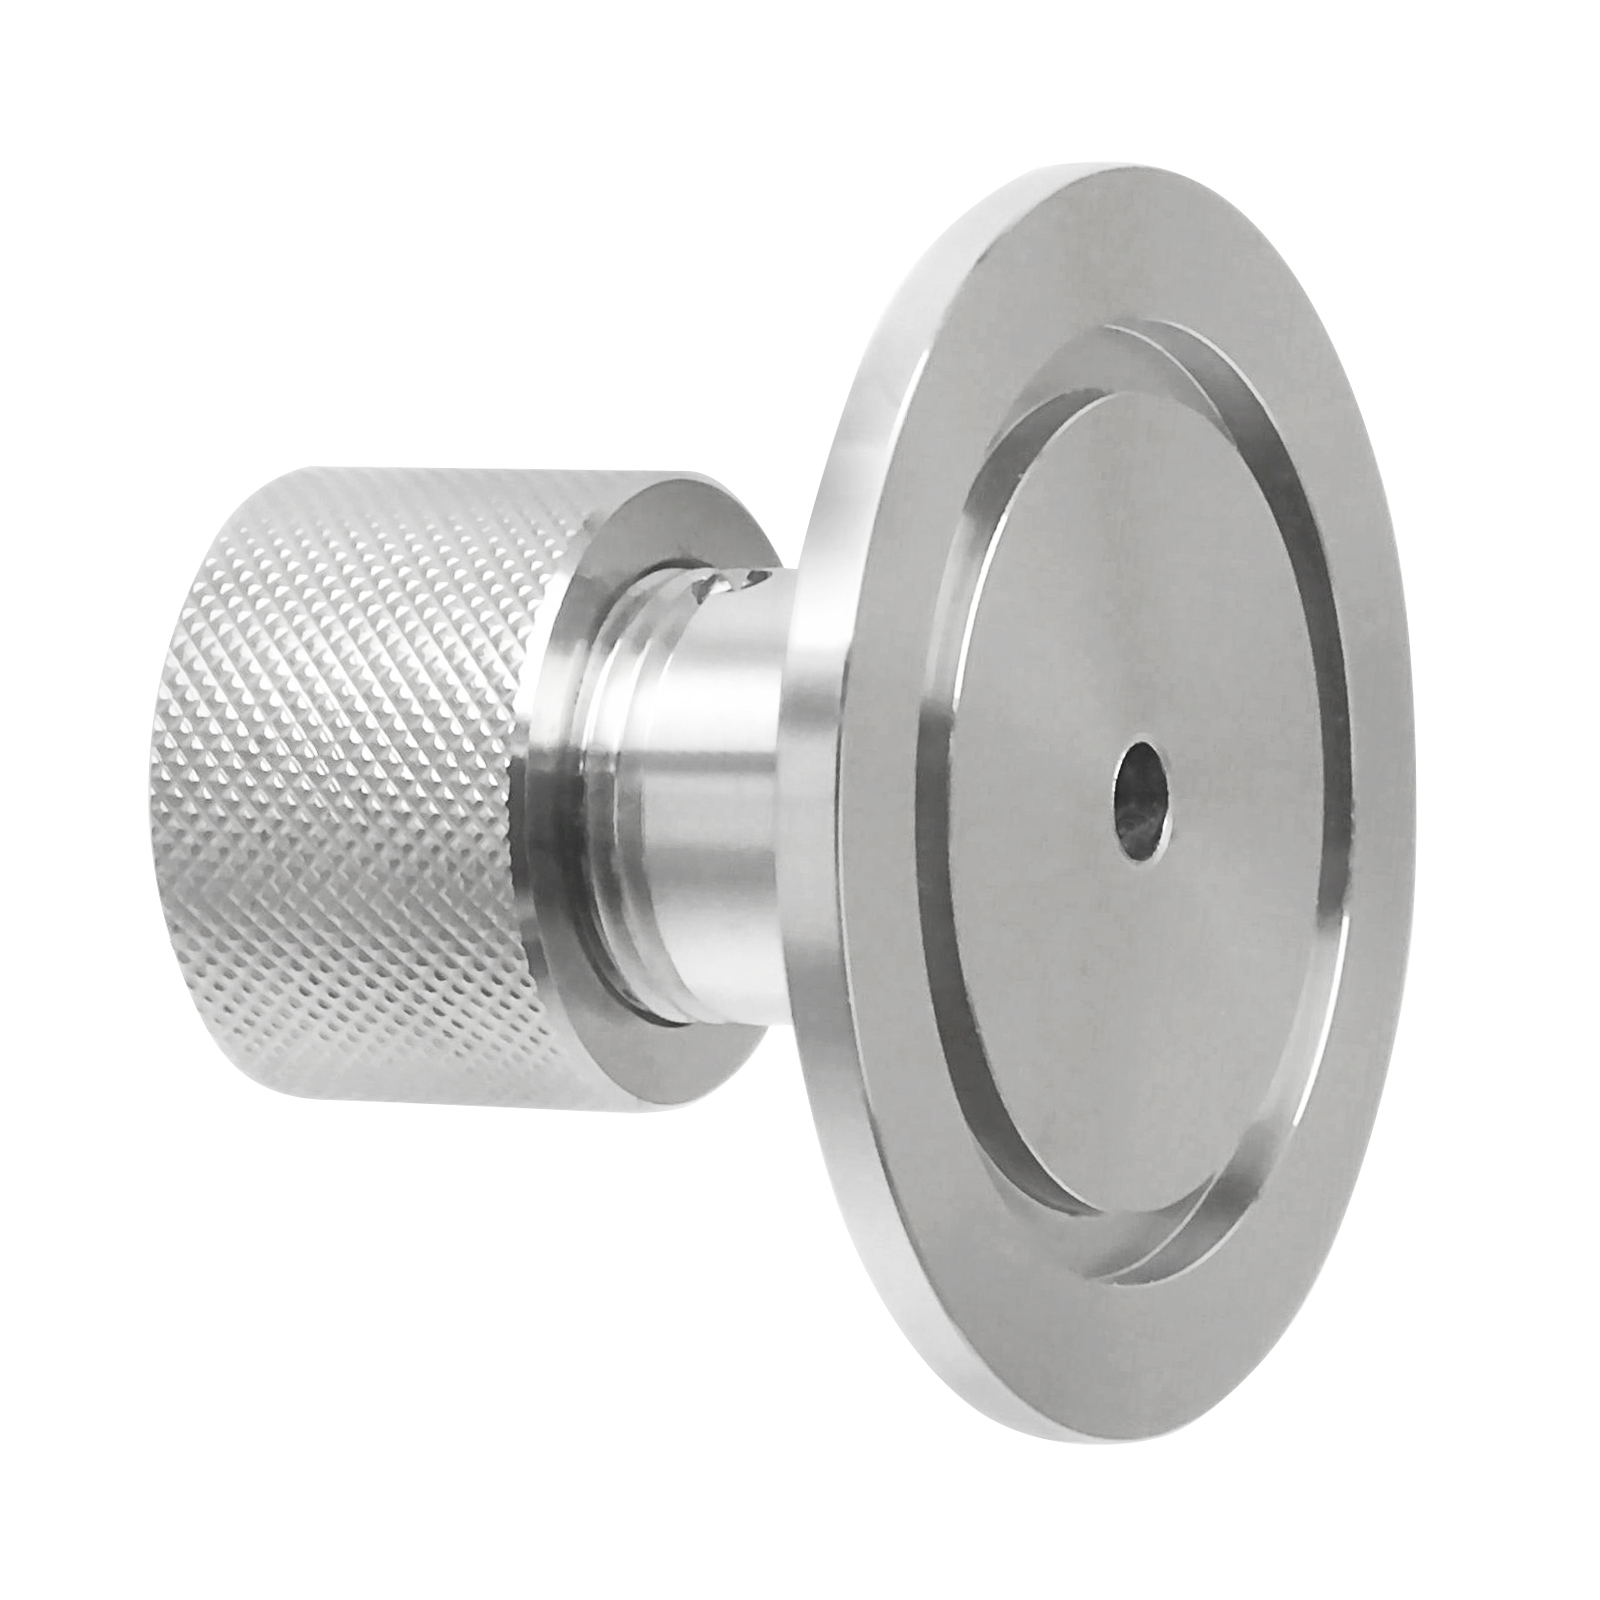 KF40 Flange Stainless Steel Vacuum Vent Valve Or Relief Valve For Vaccum System